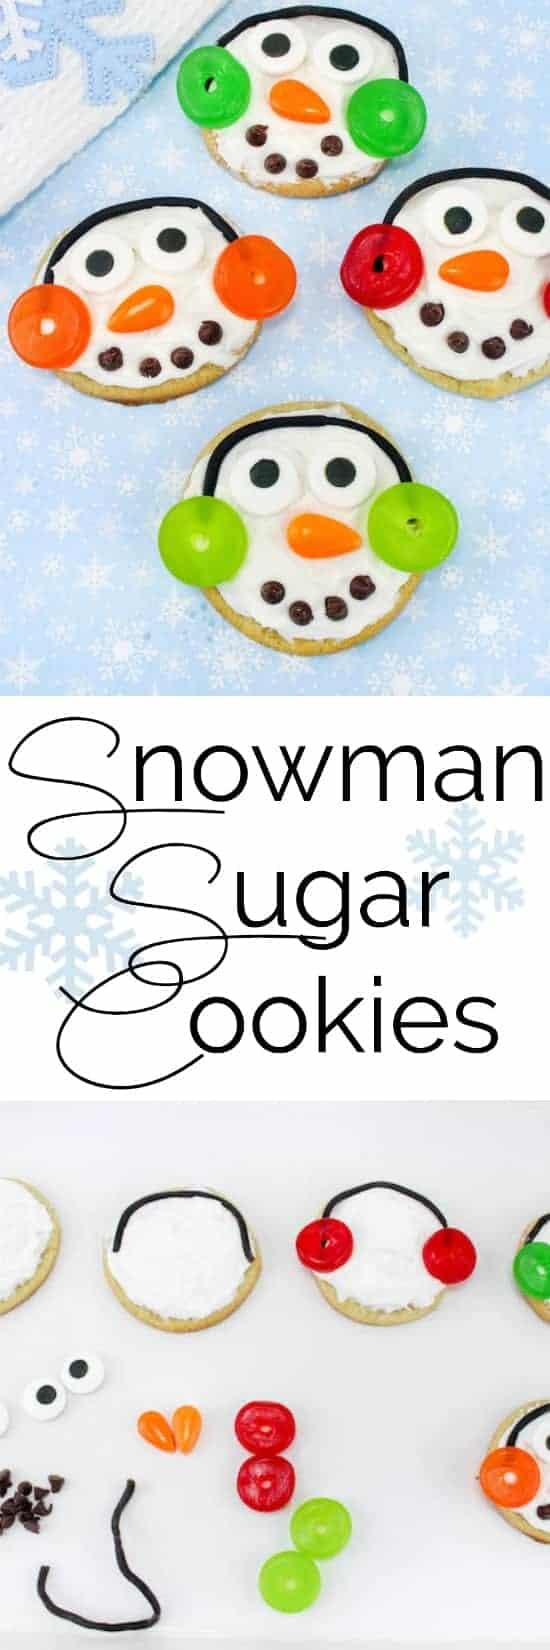 Snowman Sugar Cookies Recipe Perfect For A Christmas Cookie Swap